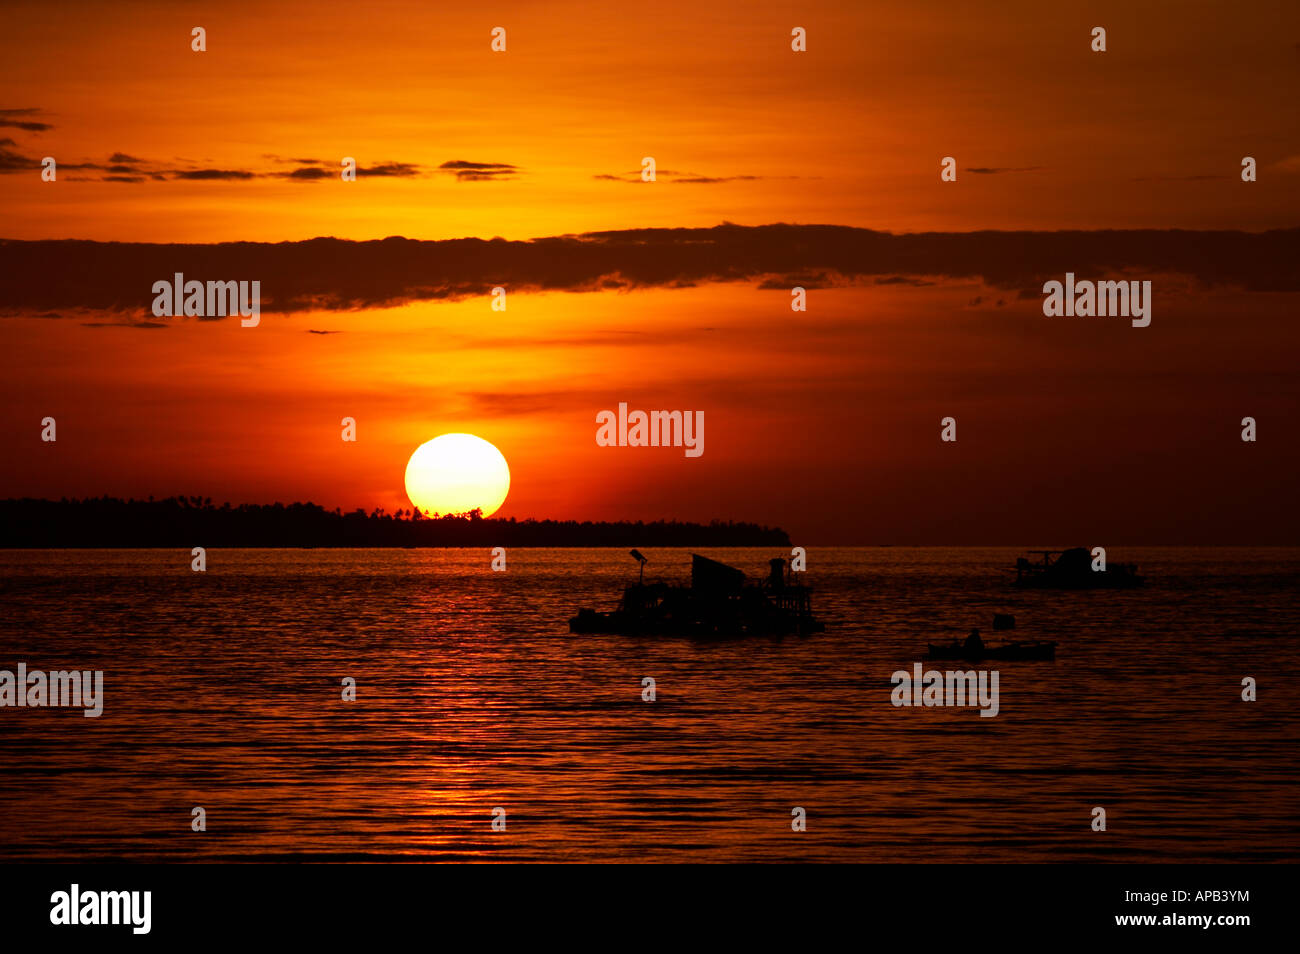 Local fishermen sail out in the early evening to fish the waters around Manado North Sulawesi Indonesia Stock Photo